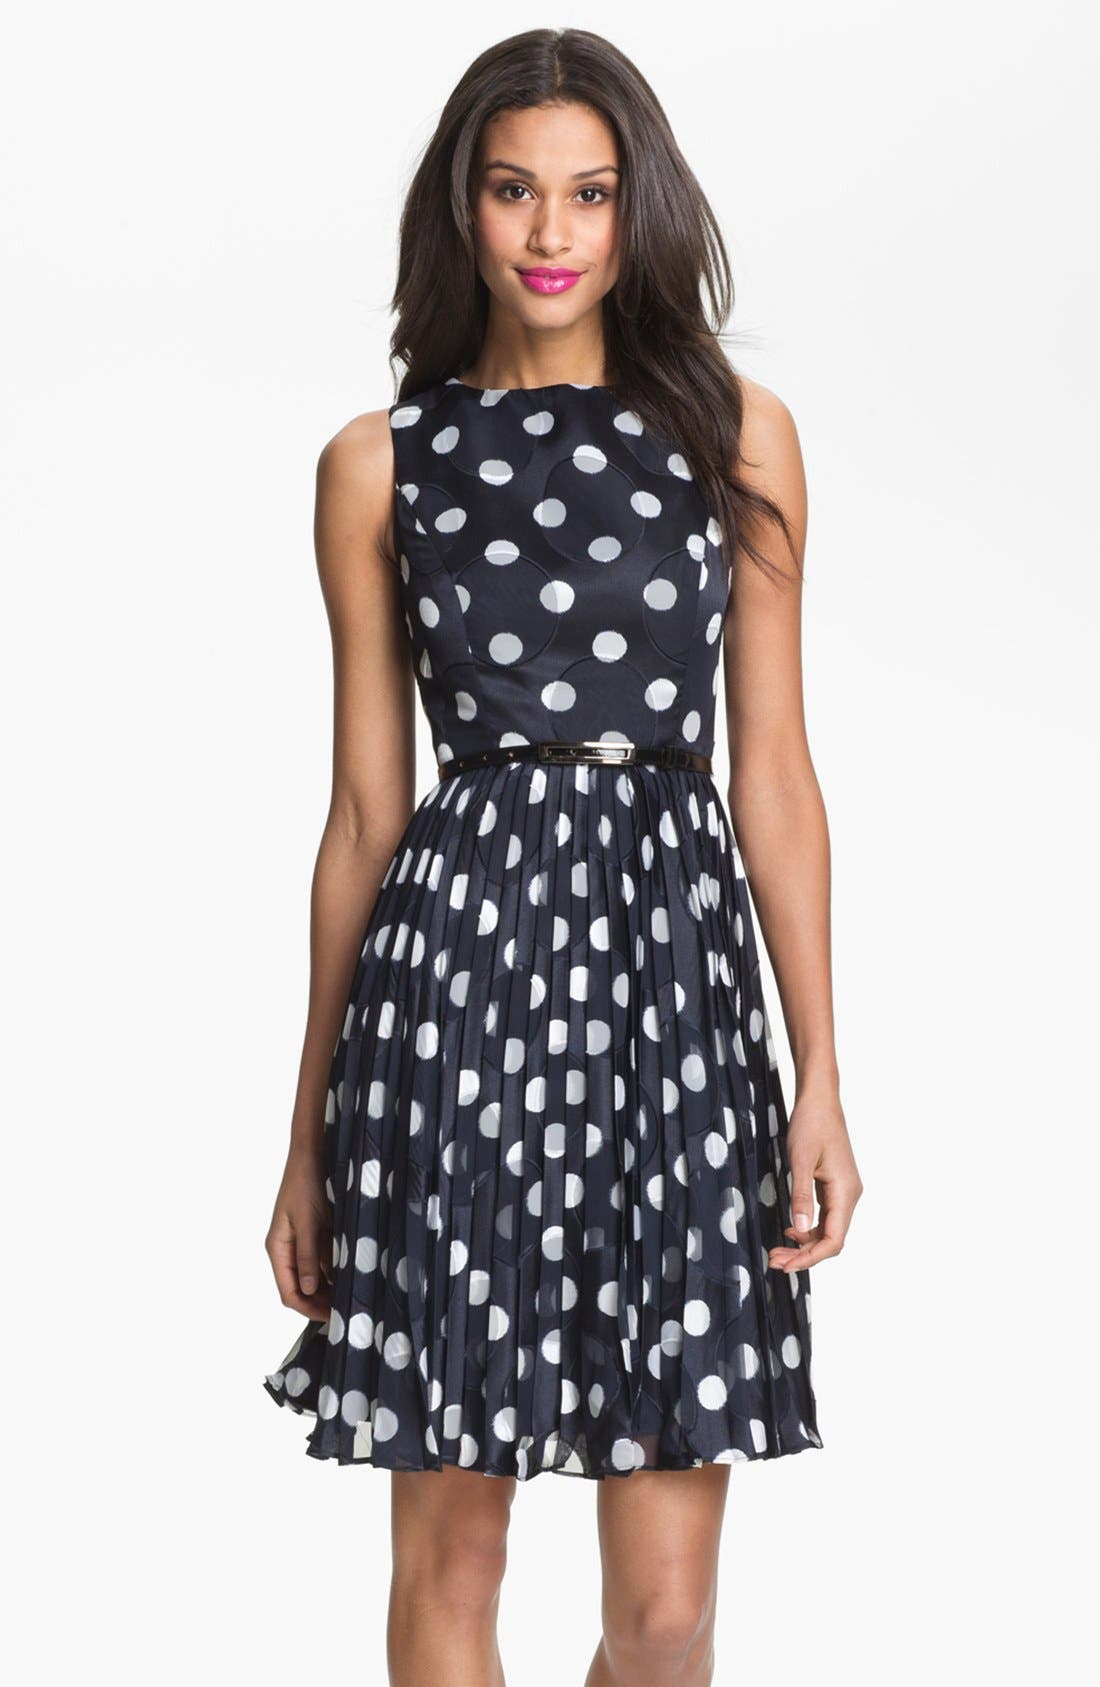 Main Image - Adrianna Papell Burnout Polka Dot Fit & Flare Dress (Regular & Petite)